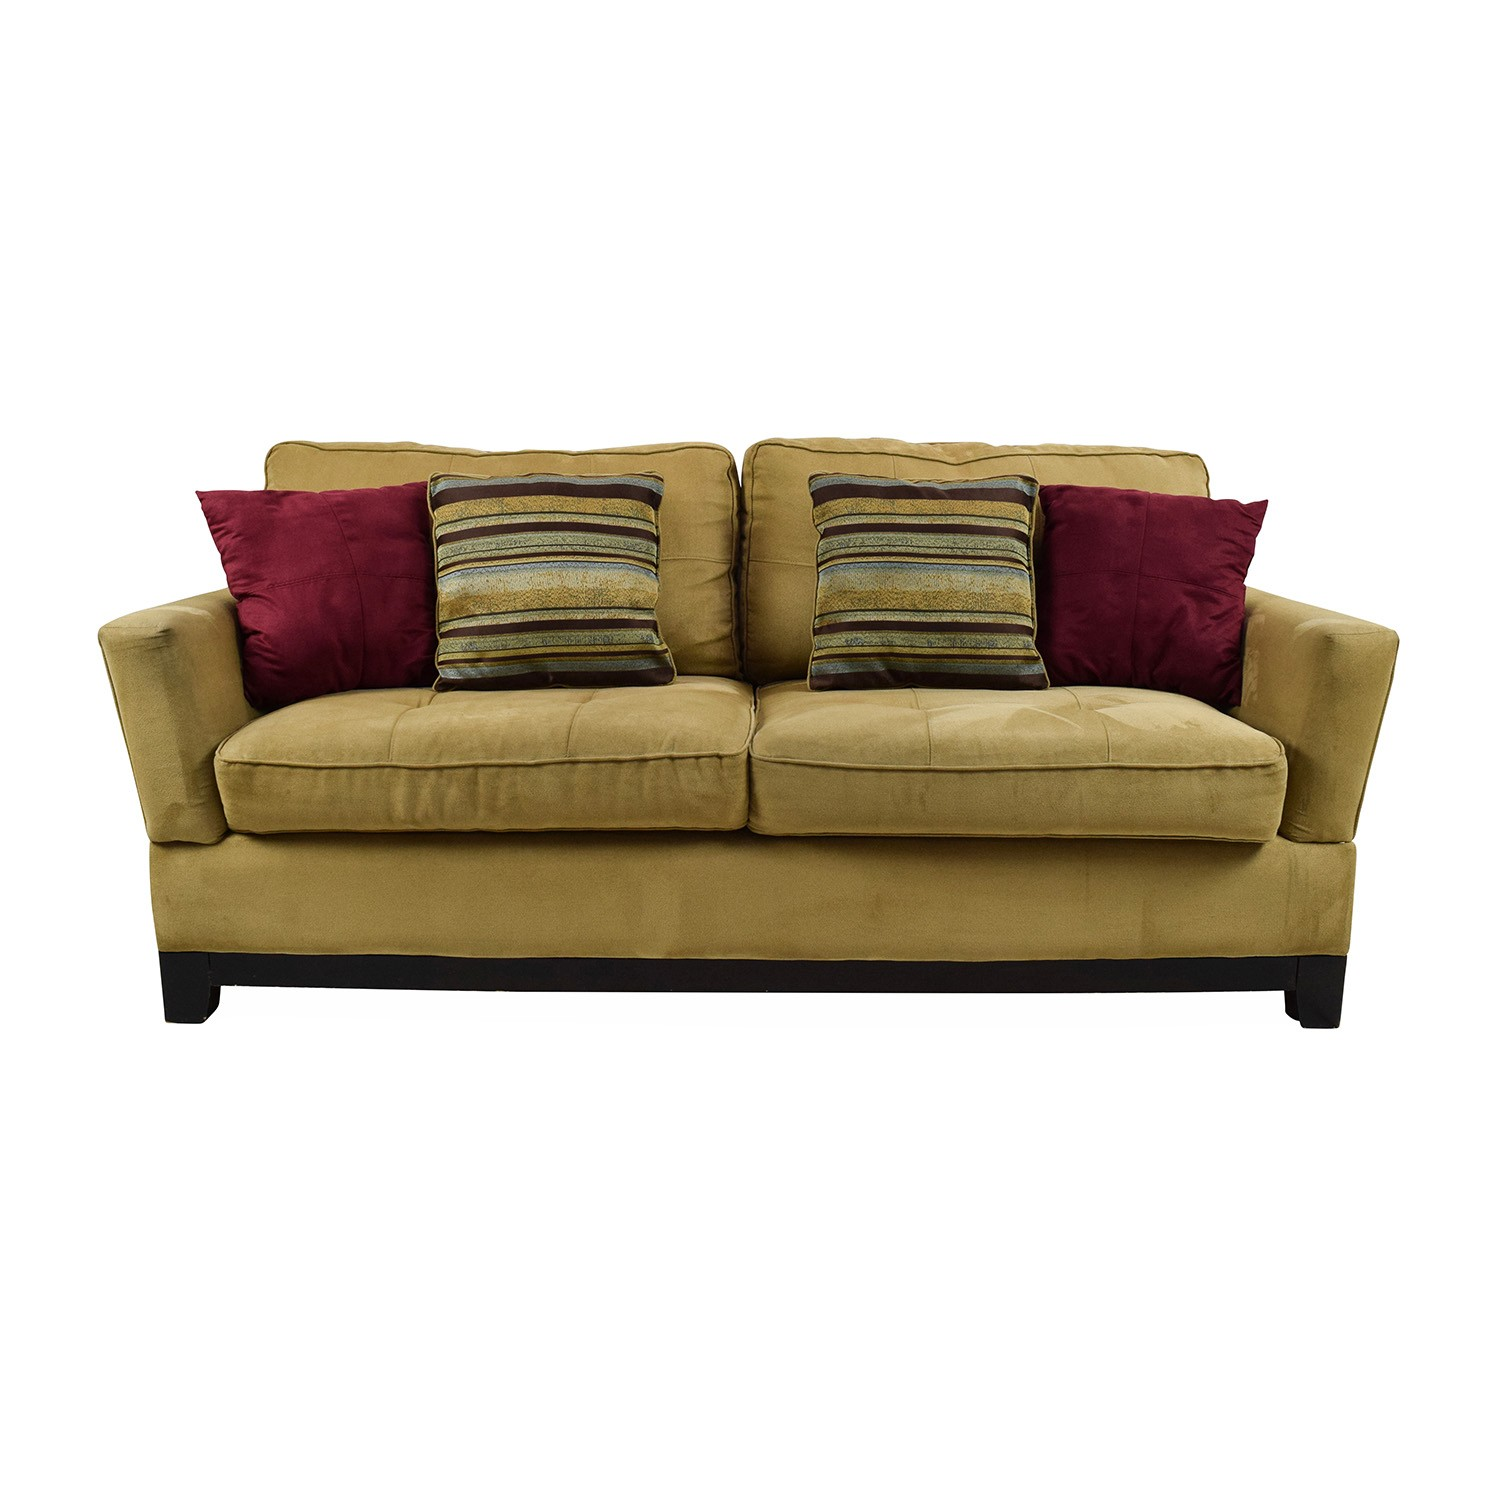 Jennifer Convertible sofas Cool Off Jennifer Convertibles Jennifer Convertibles Tan sofa sofas Concept